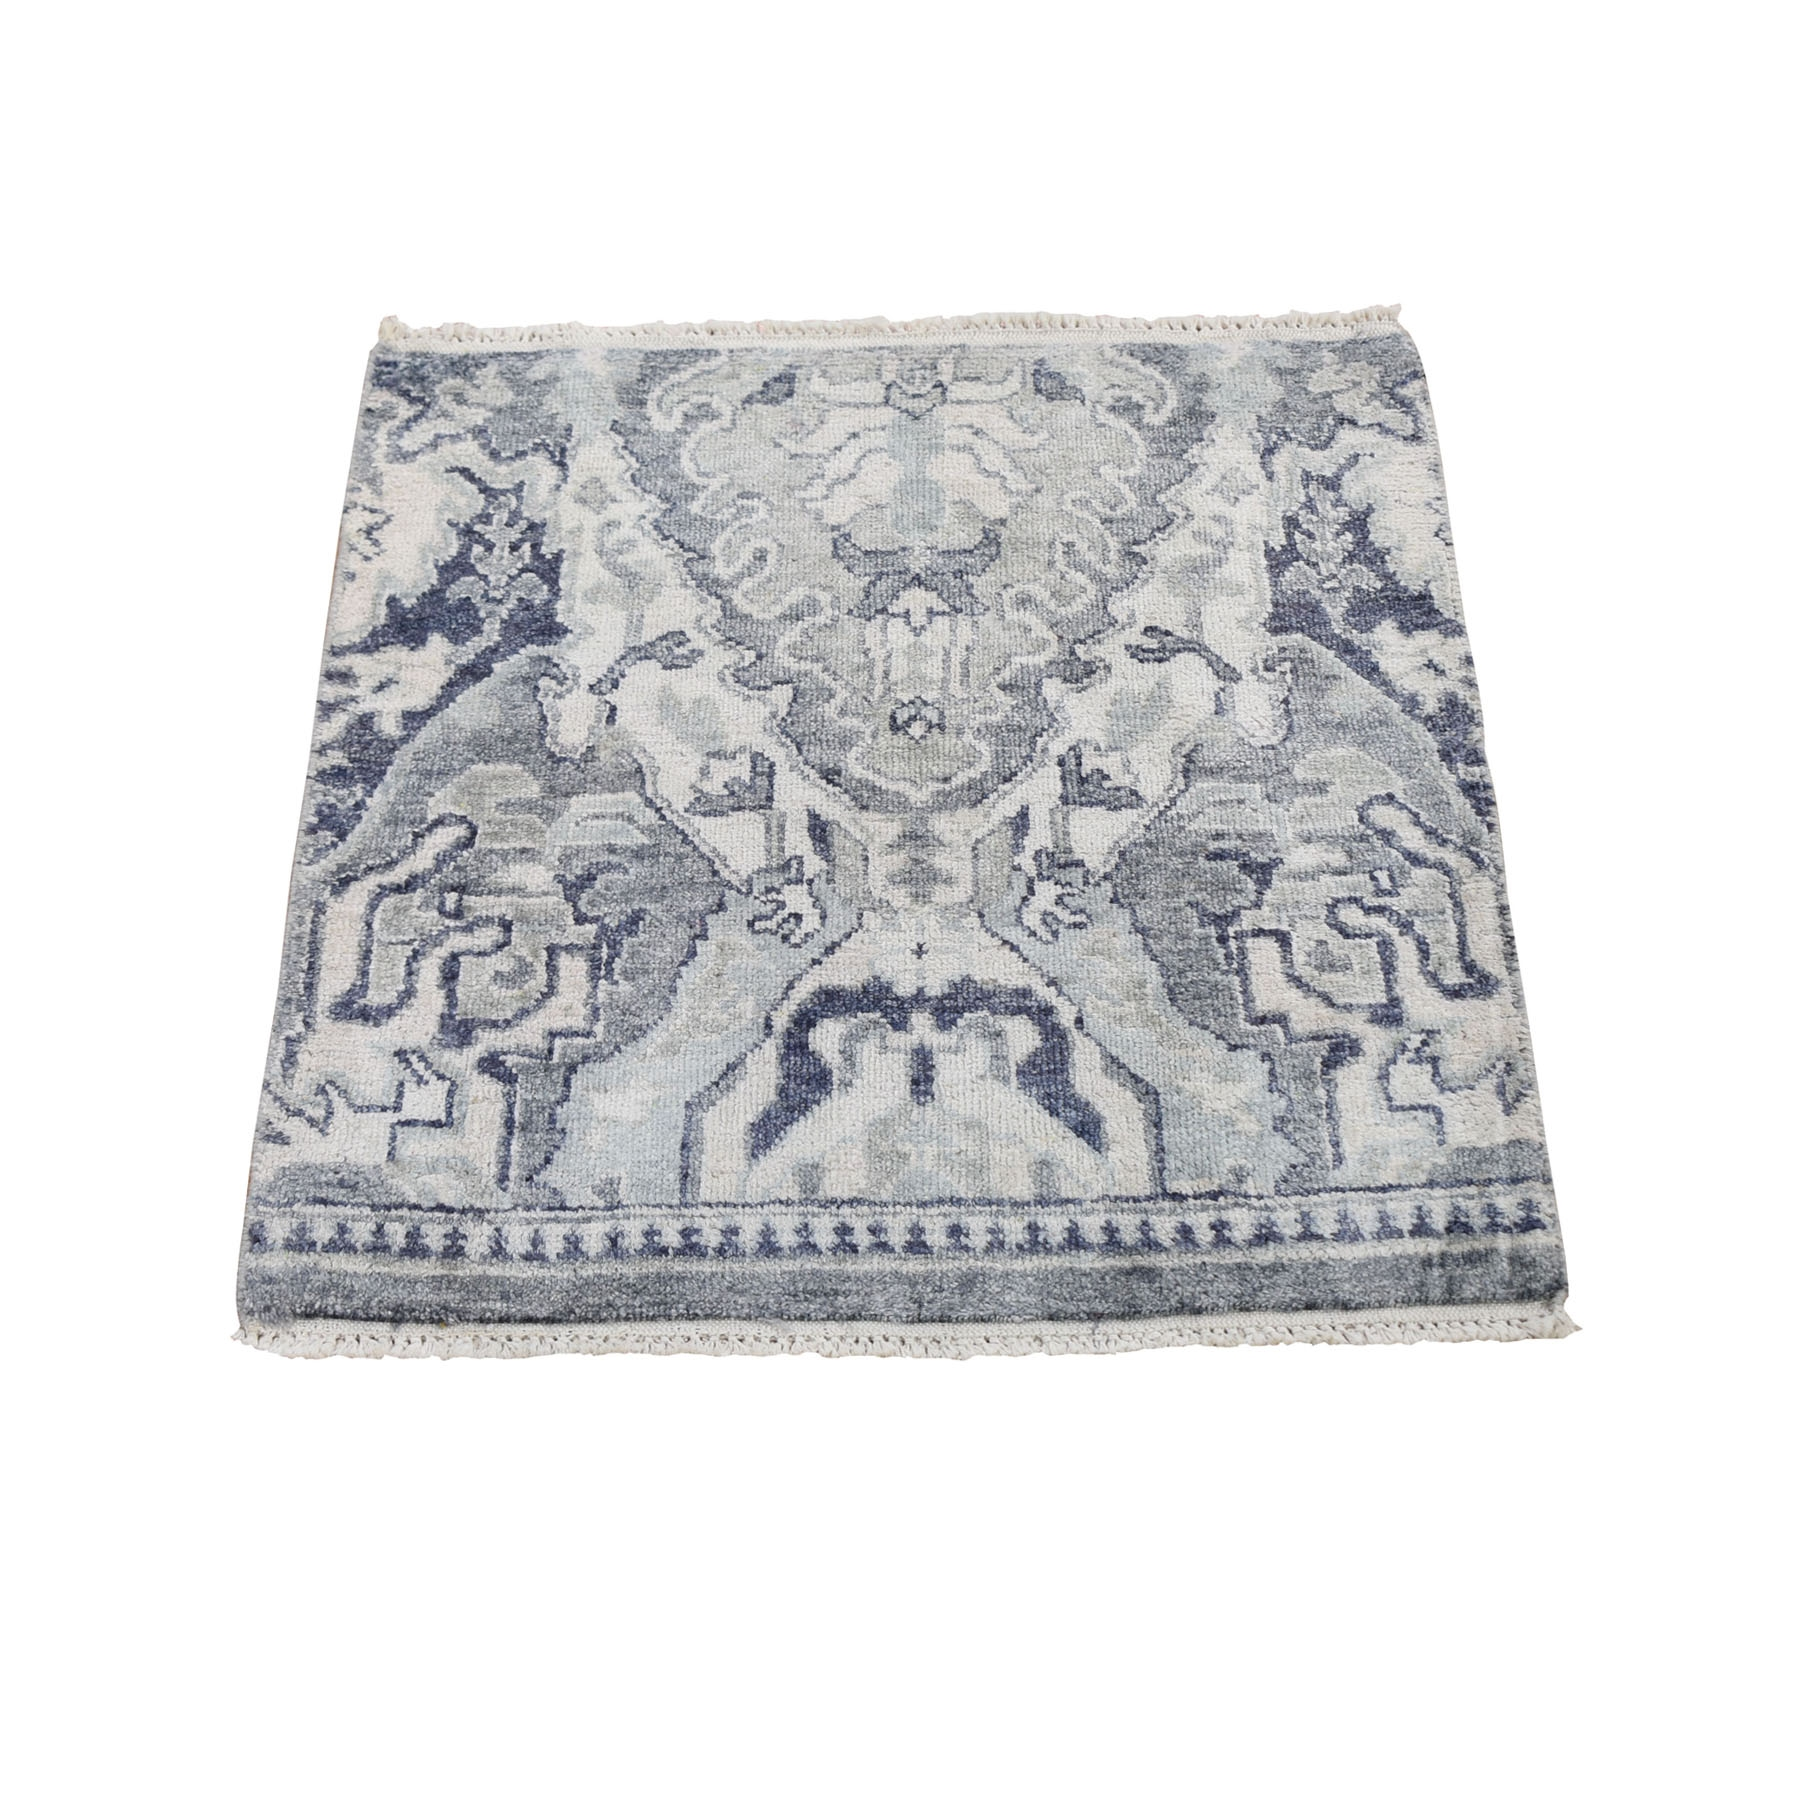 2'X2' Sampler Pure Silk With Textured Wool Hand Knotted Oriental Rug moae9a8d